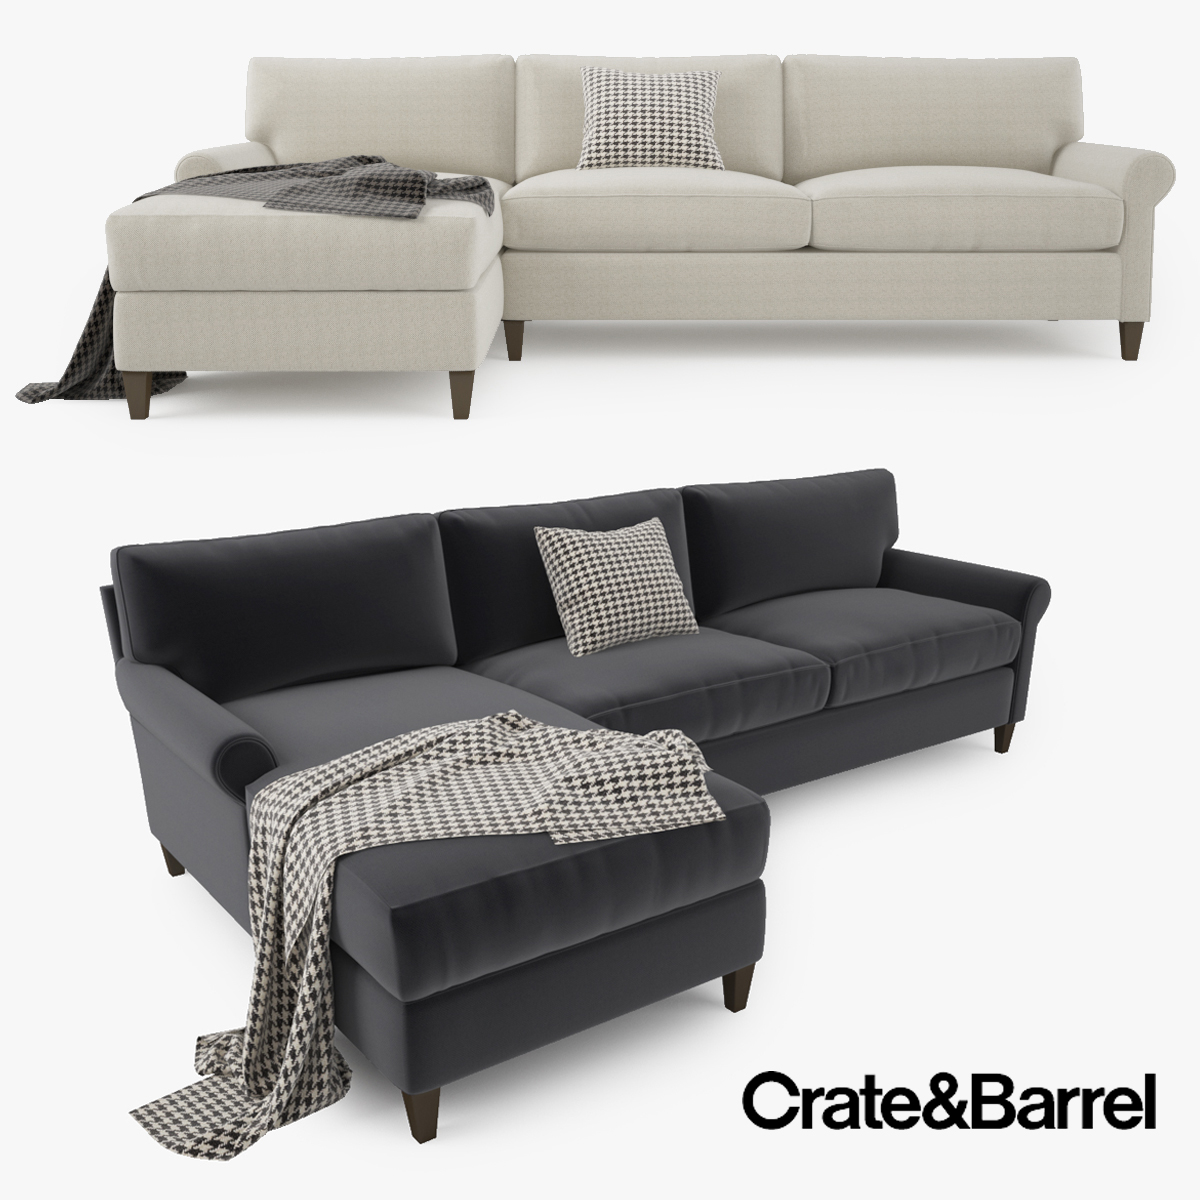 Astonishing Crate And Barrel Montclair 2 Piece Sectional Sofa Inzonedesignstudio Interior Chair Design Inzonedesignstudiocom